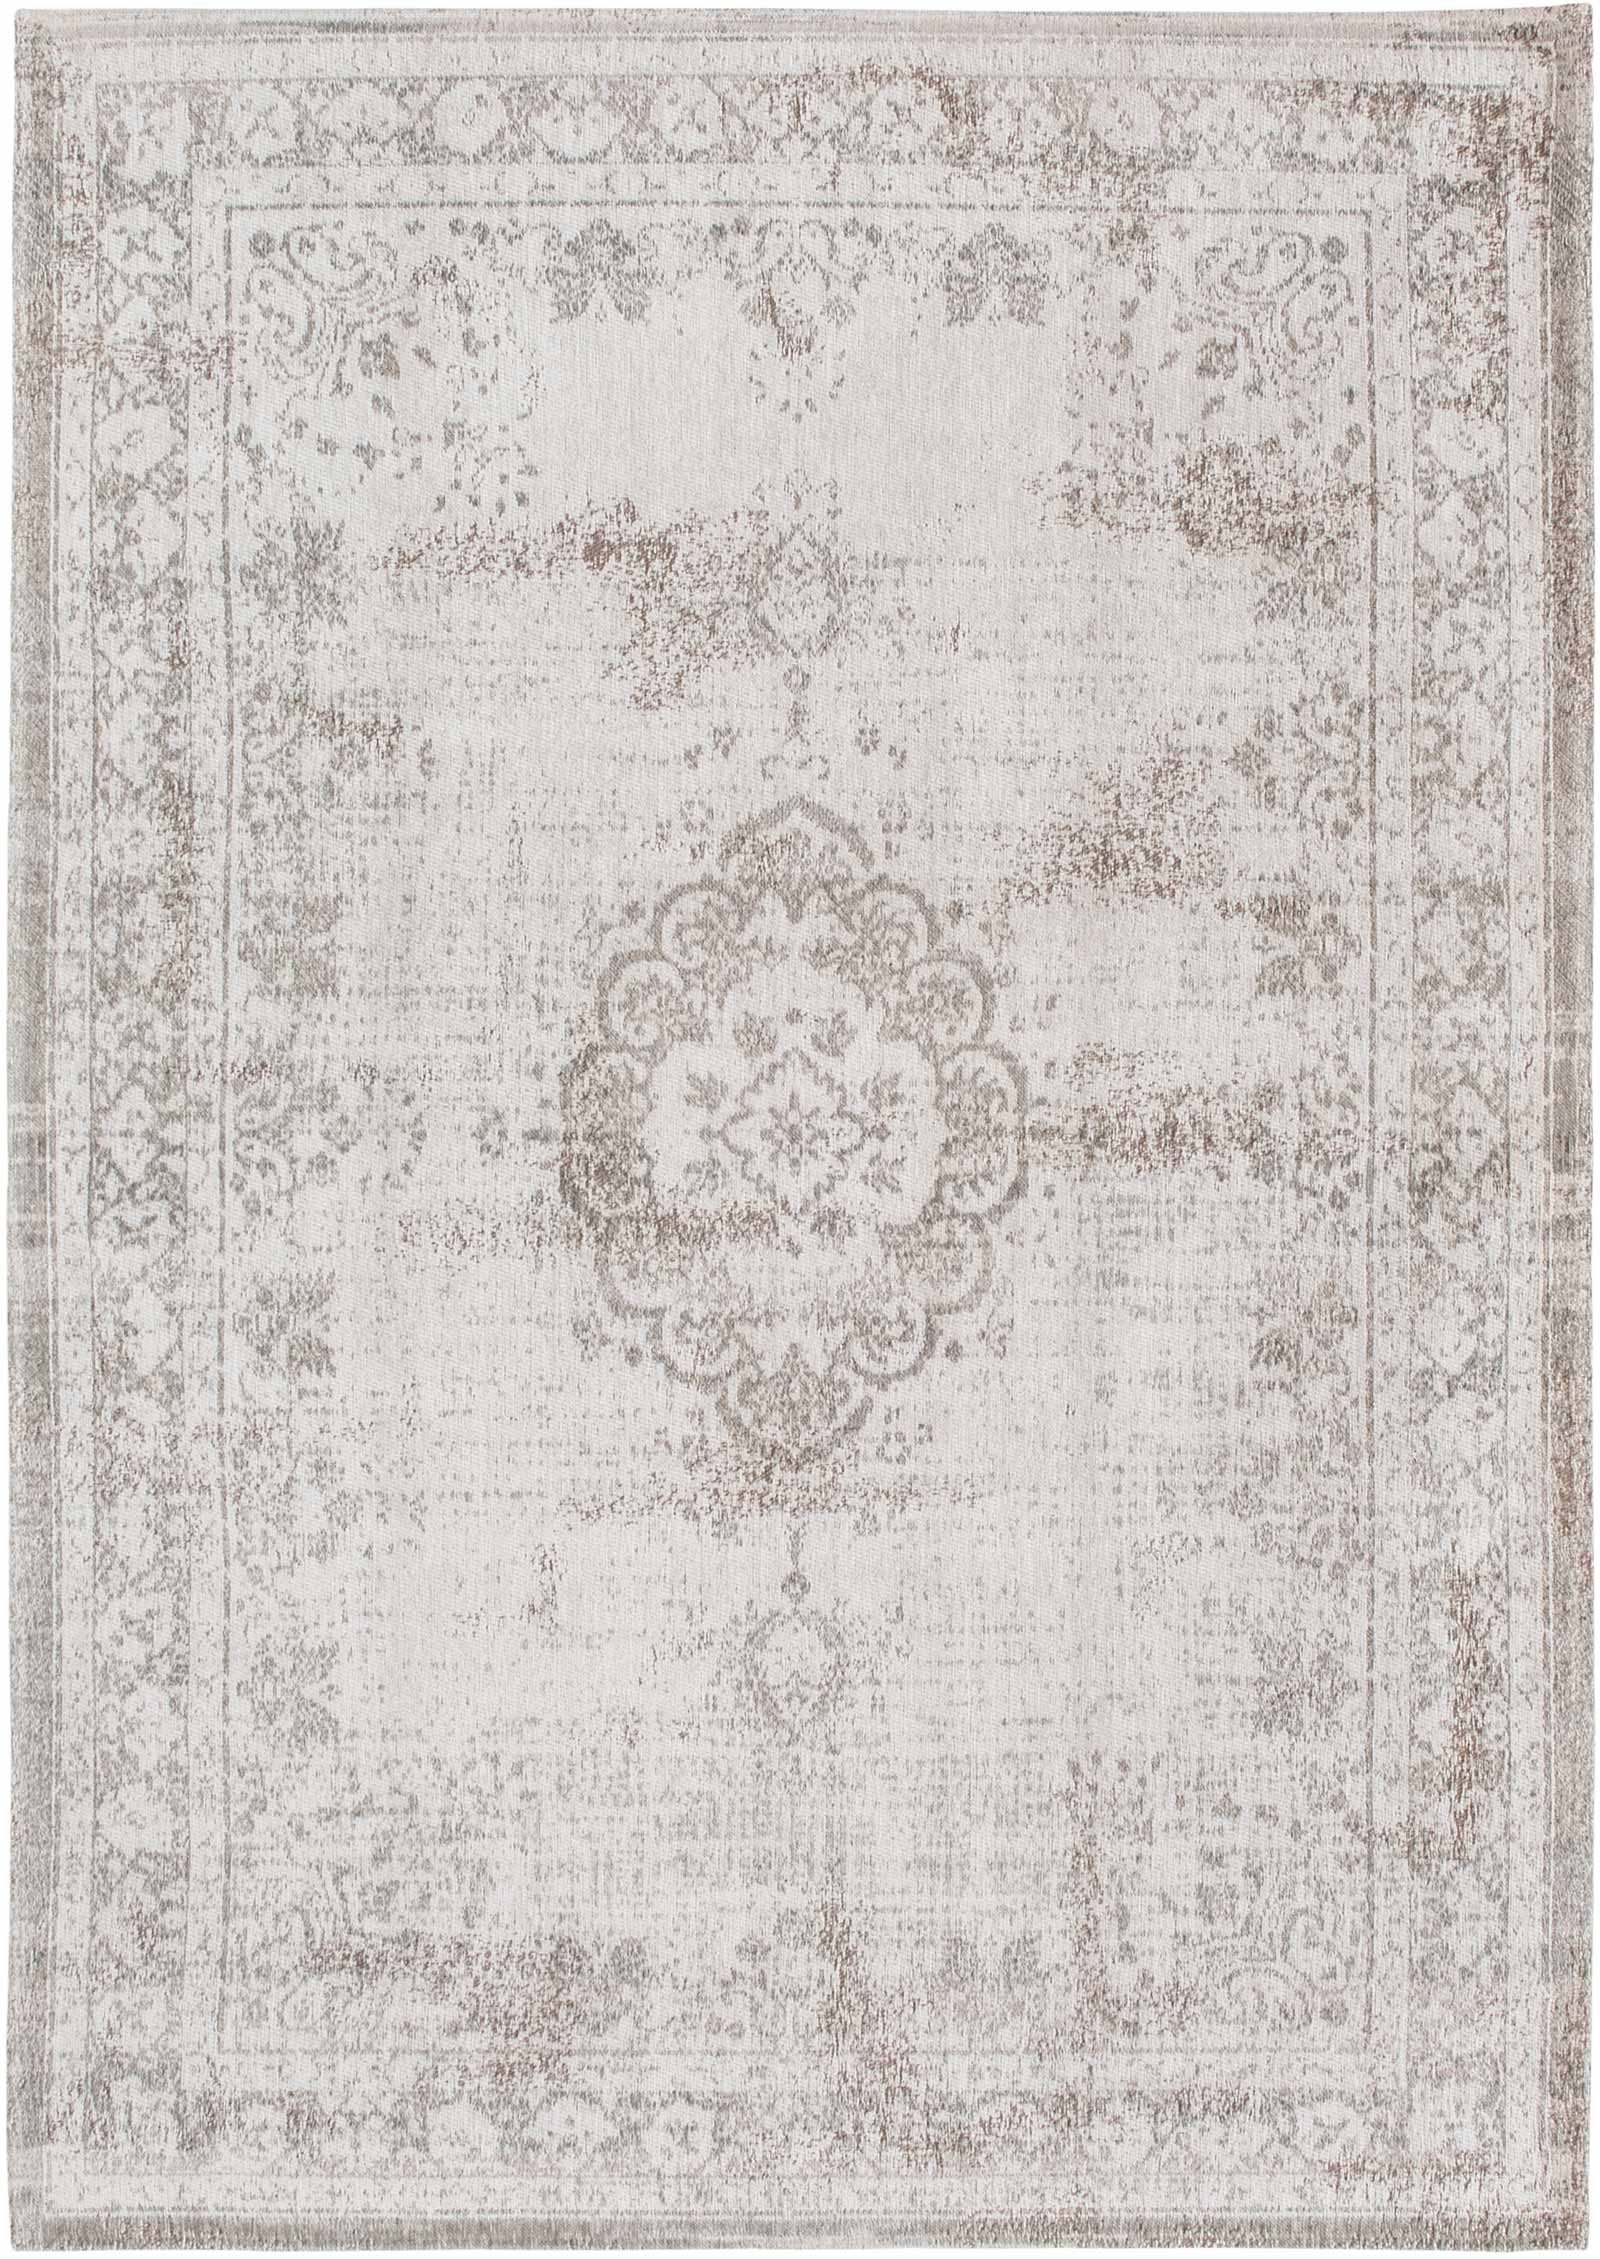 Louis De Porterre Teppiche Louis De Poortere Rug Fading World Salt Pepper 8383 Medallion Design